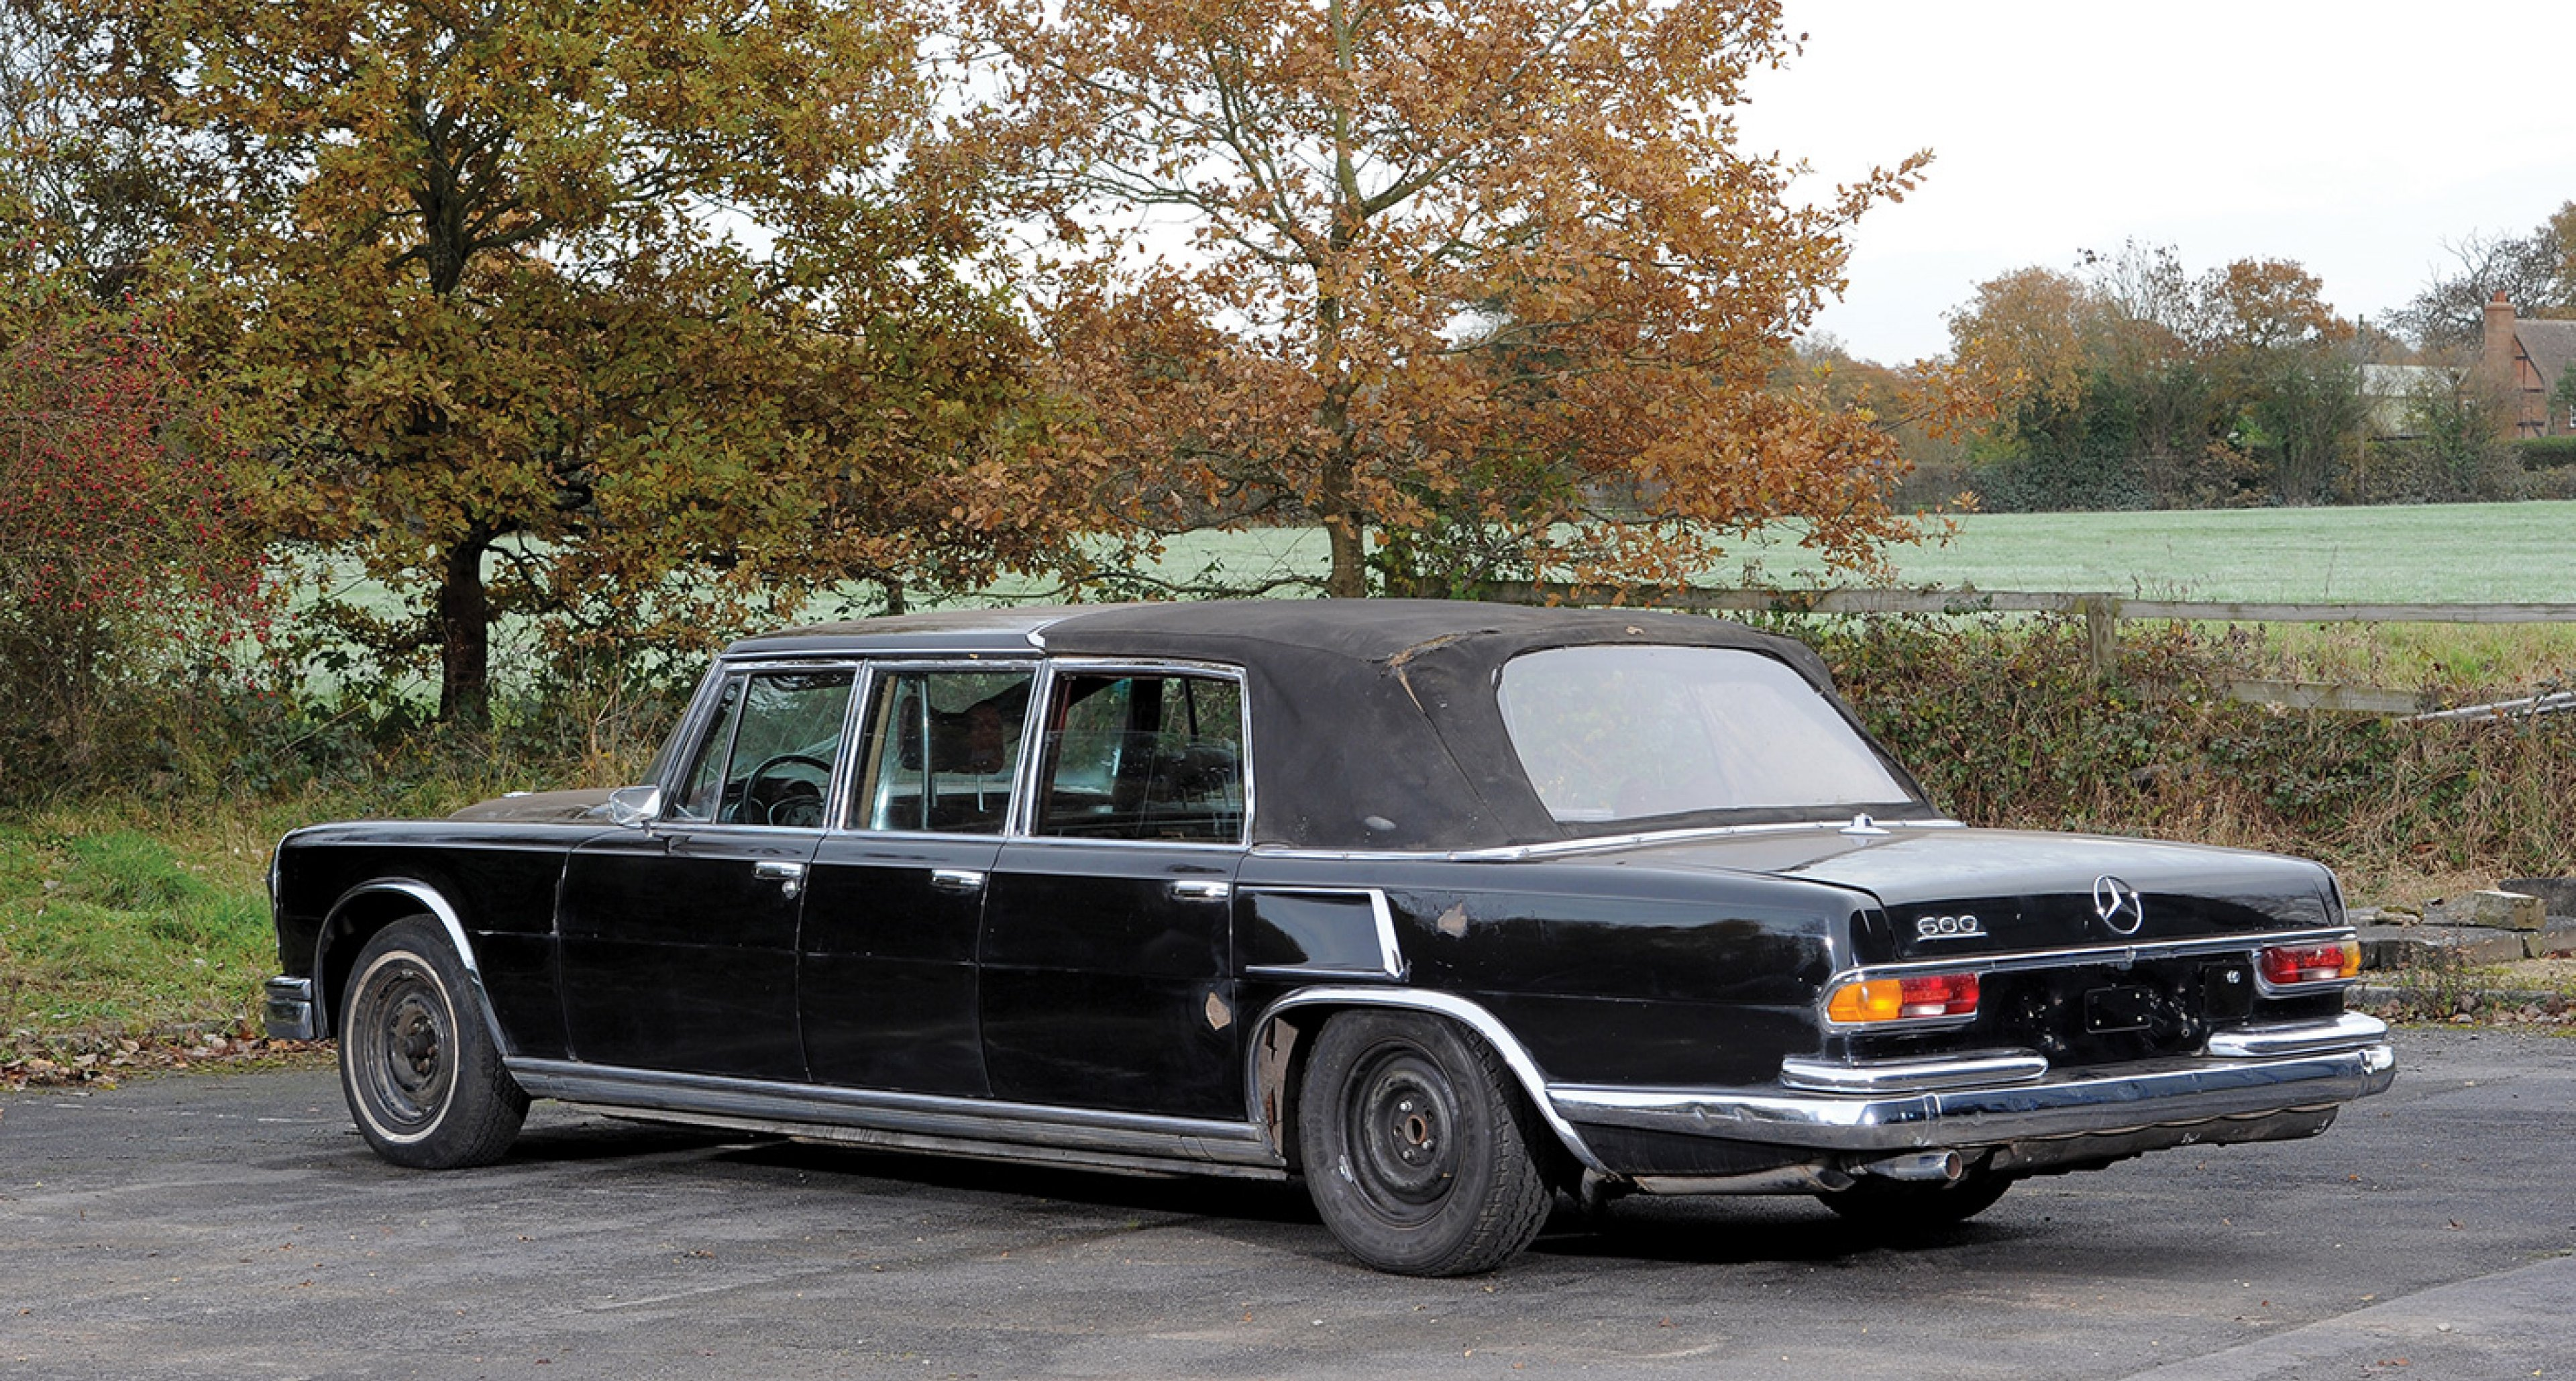 1971 Mercedes-Benz 600 'Six-Door' Pullman Landaulet sold by RM in February 2014 for €537,600